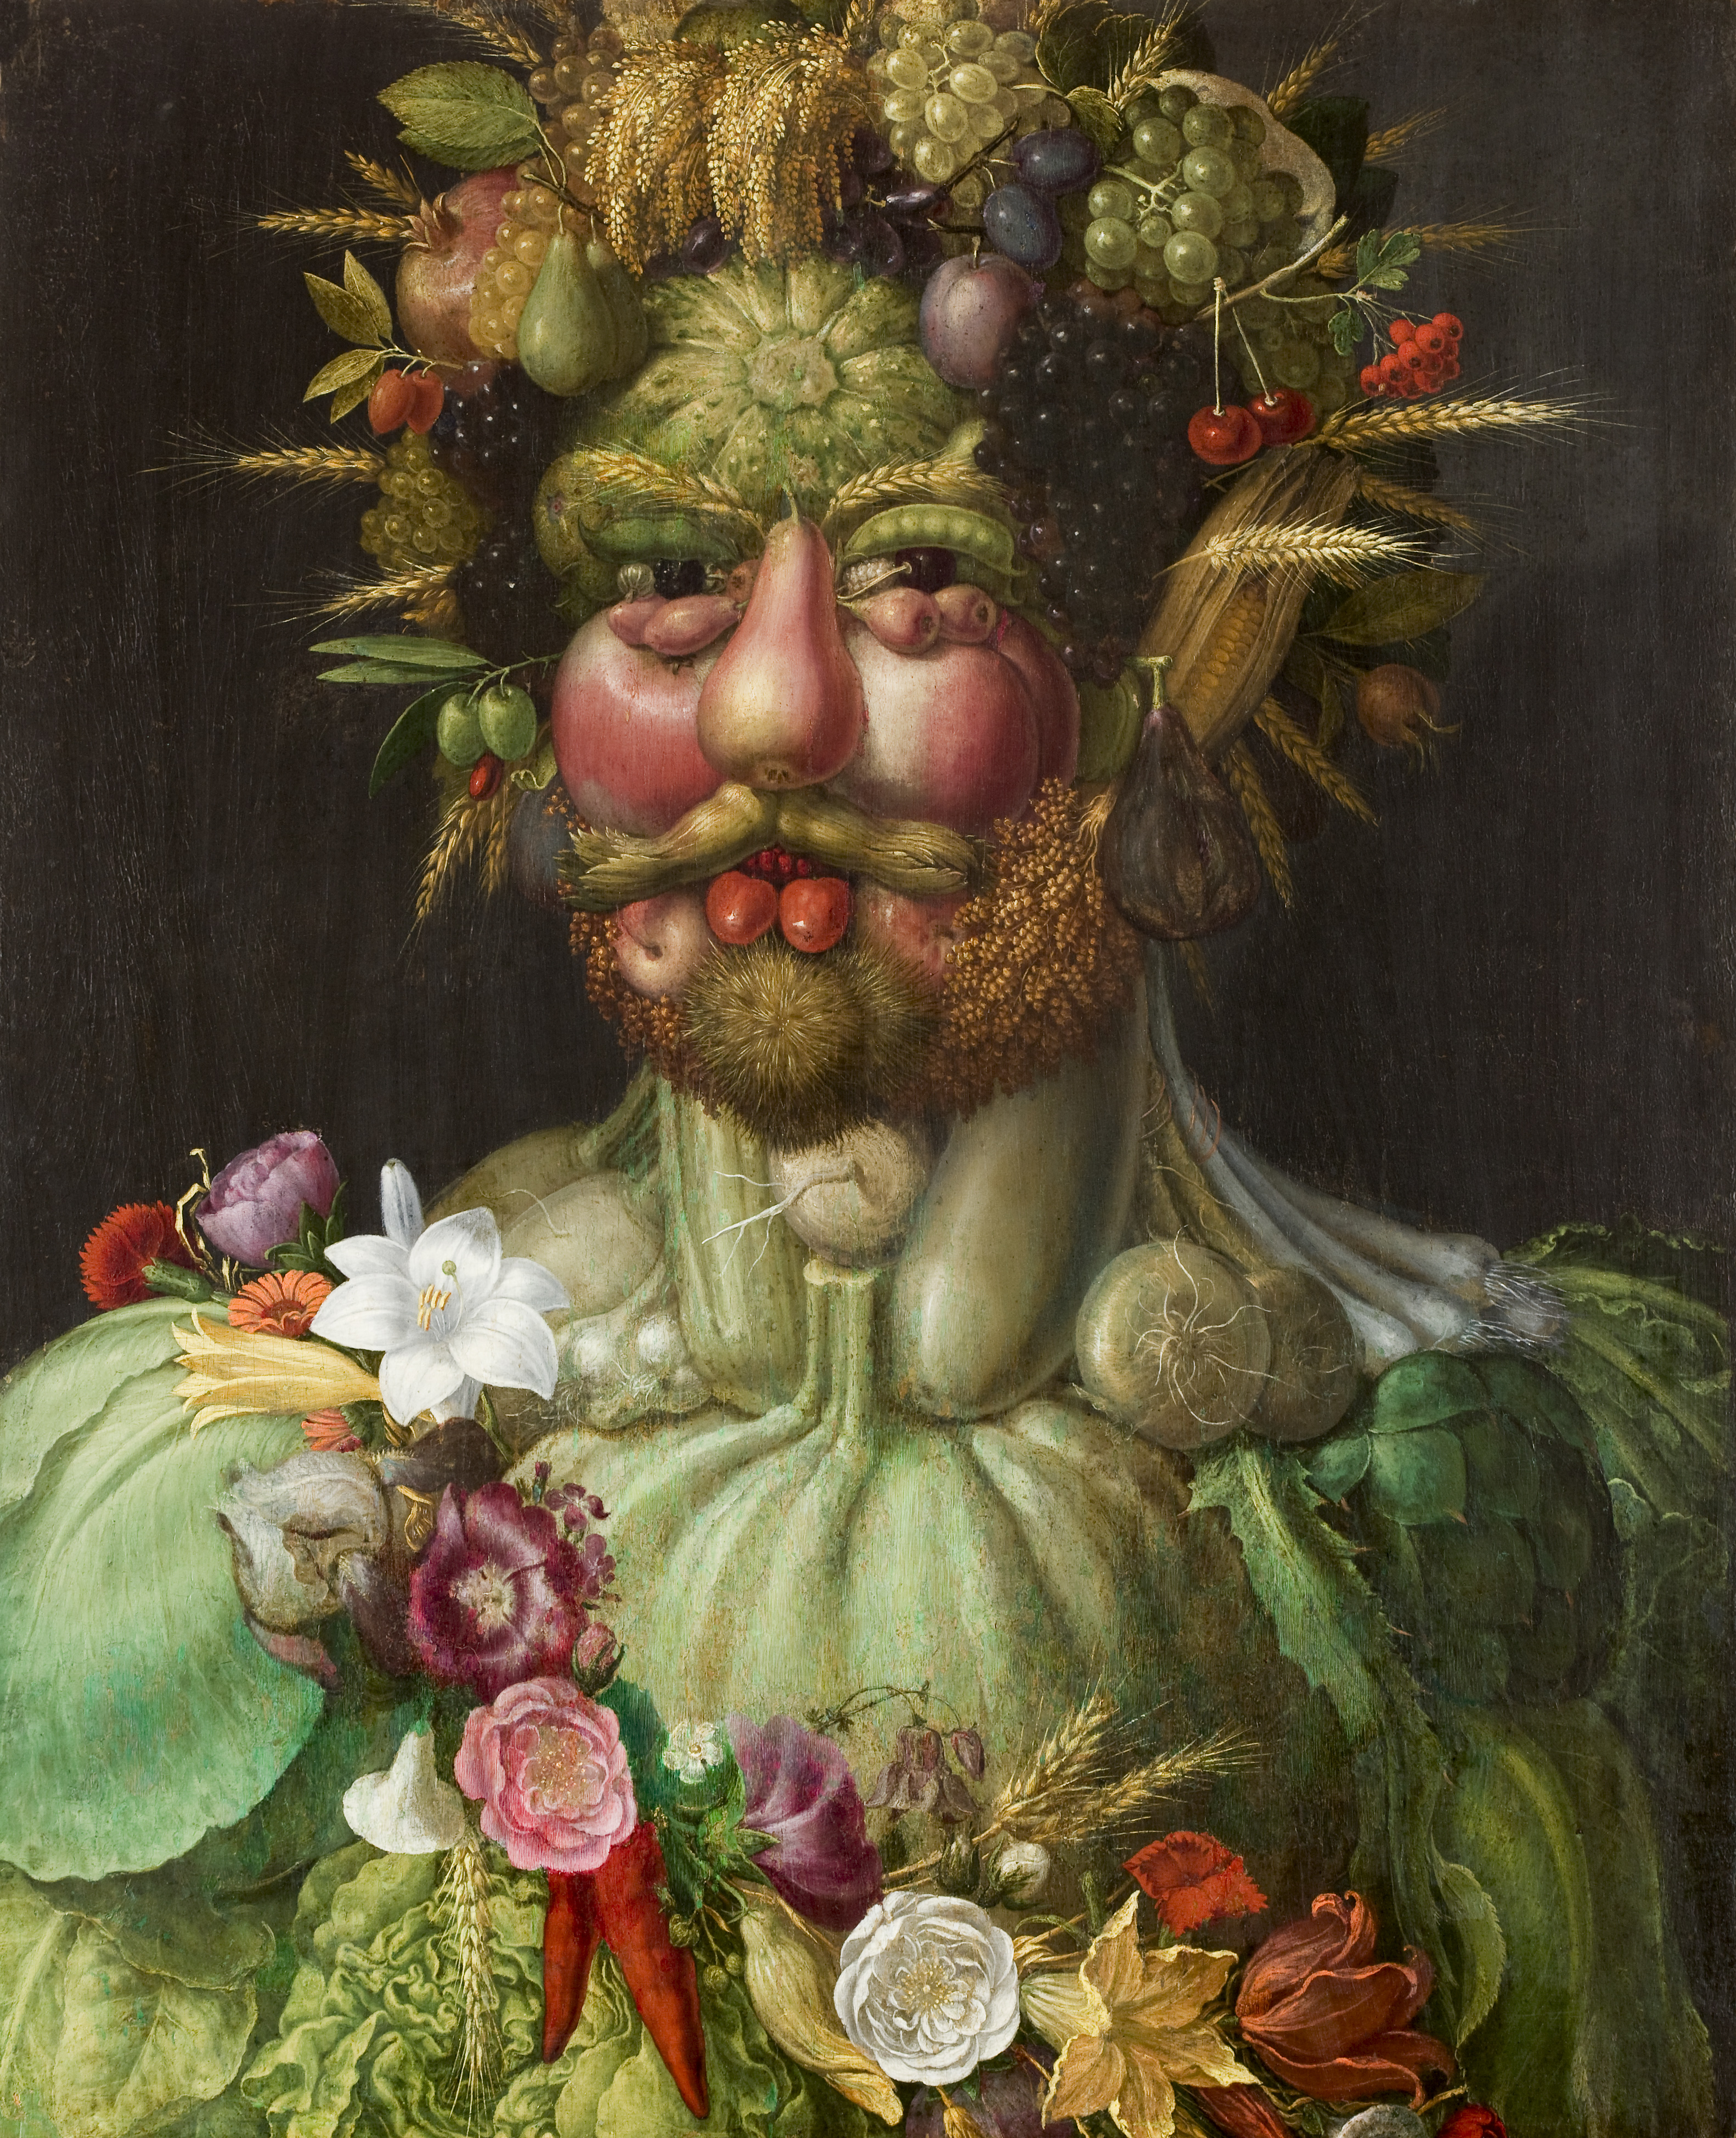 Painting of man made of fruit and vegetables